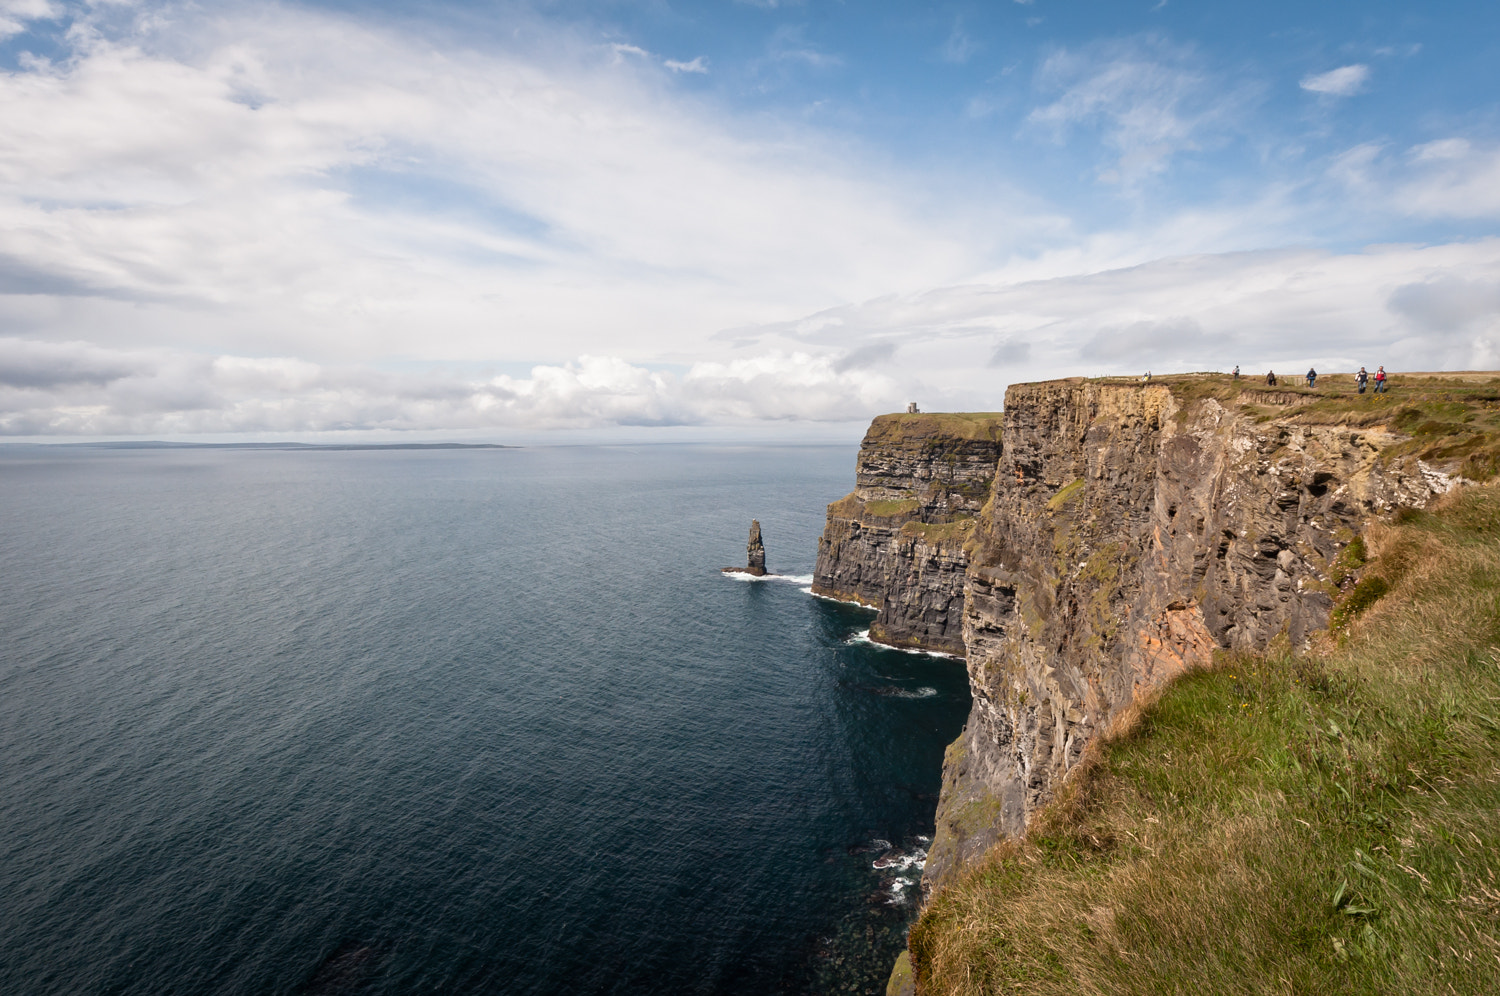 Photograph Cliffs of Moher by Nicholas Marmonti on 500px